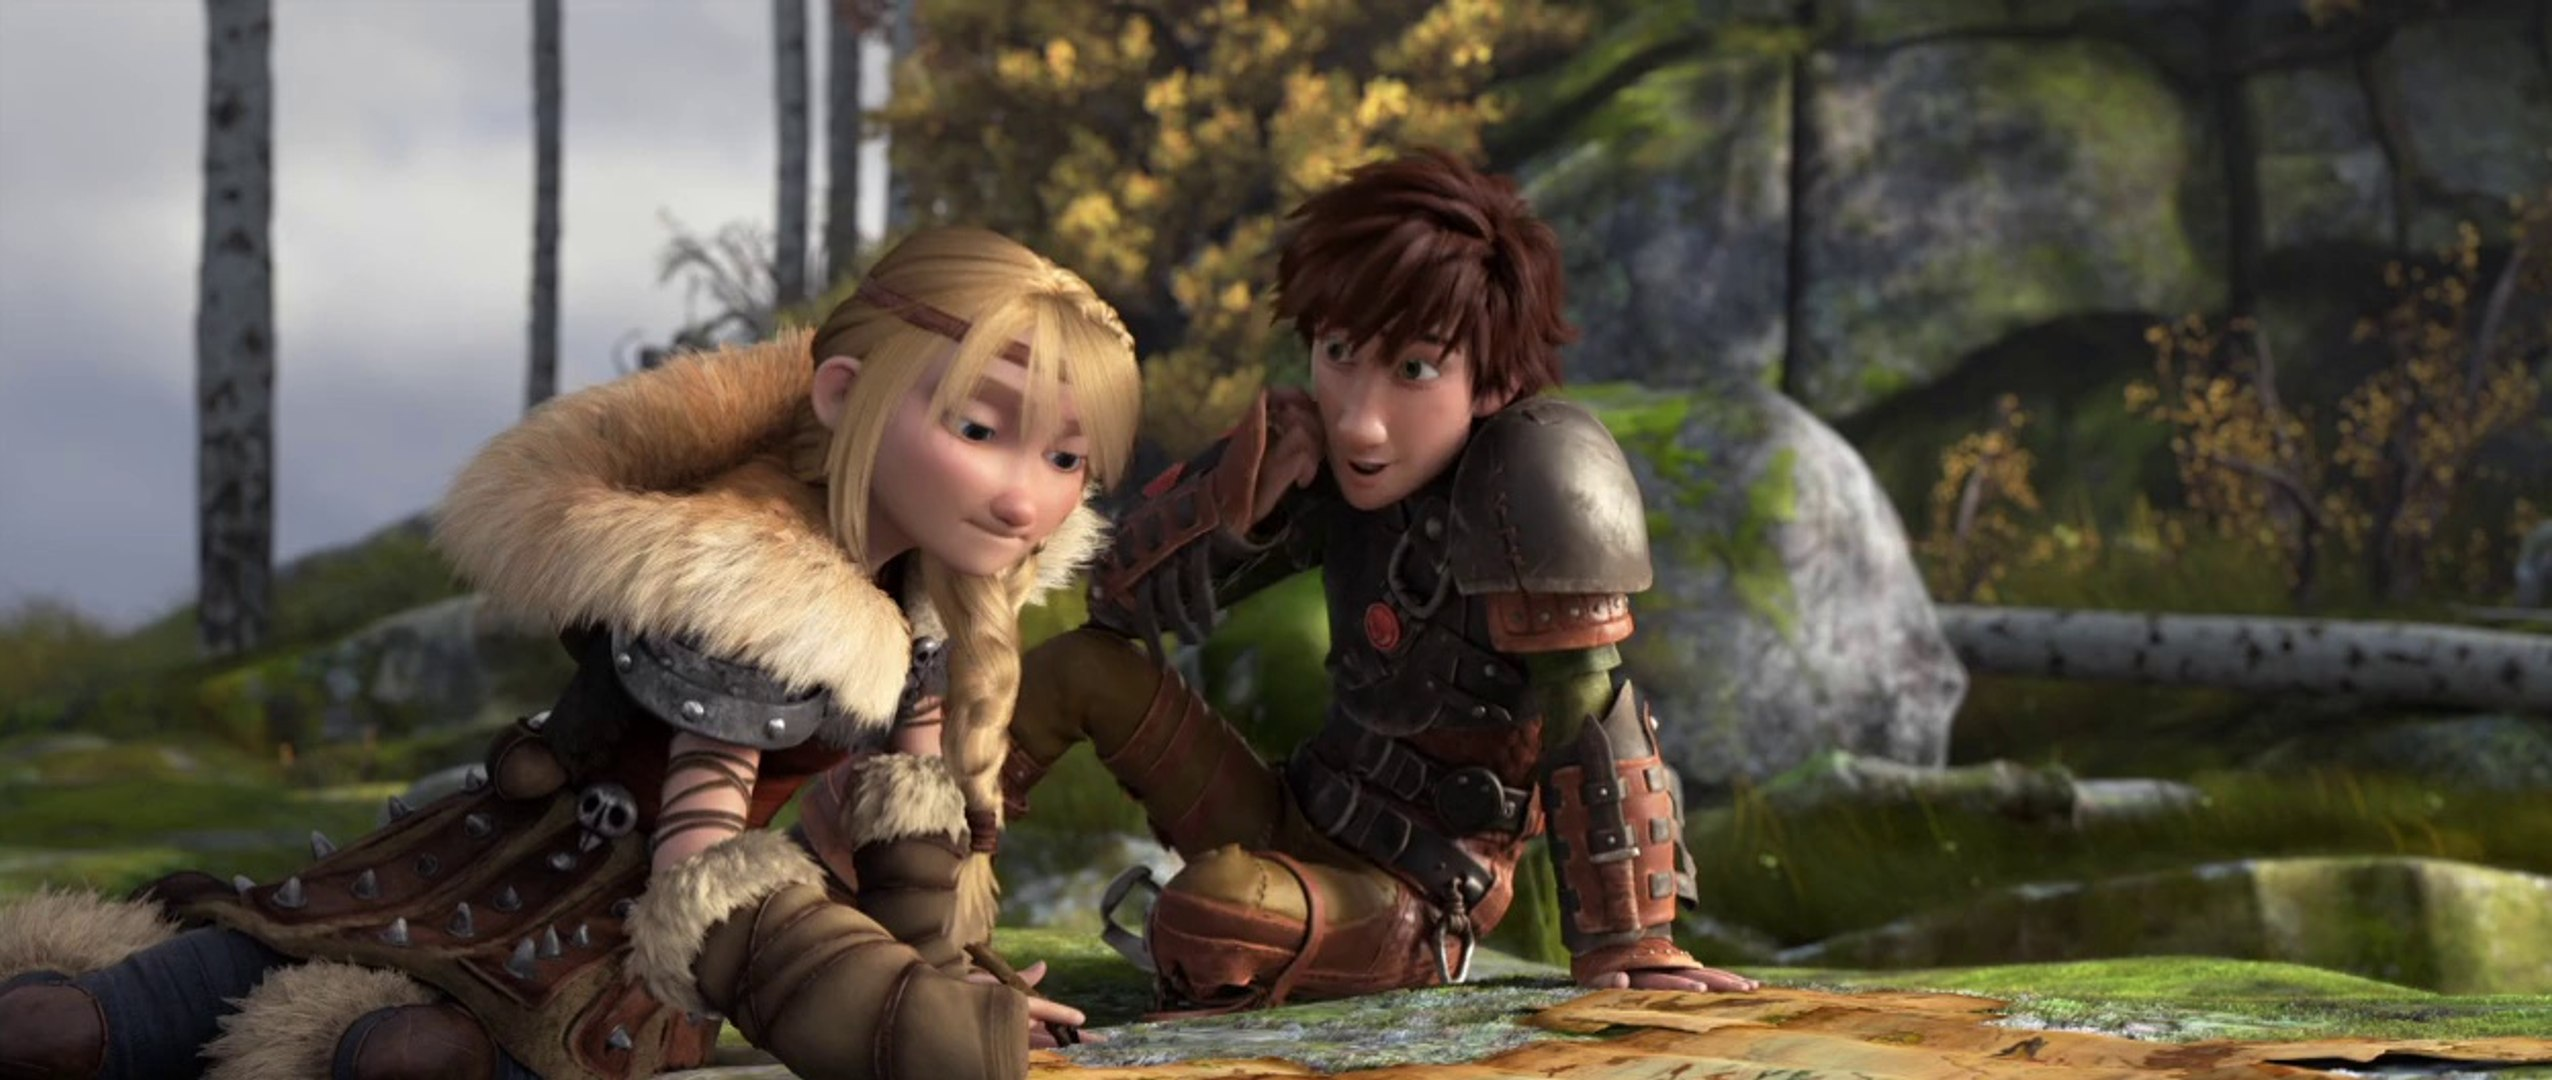 How To Train Your Dragon 2 Hiccup And Astrid Clip Hd Video Dailymotion